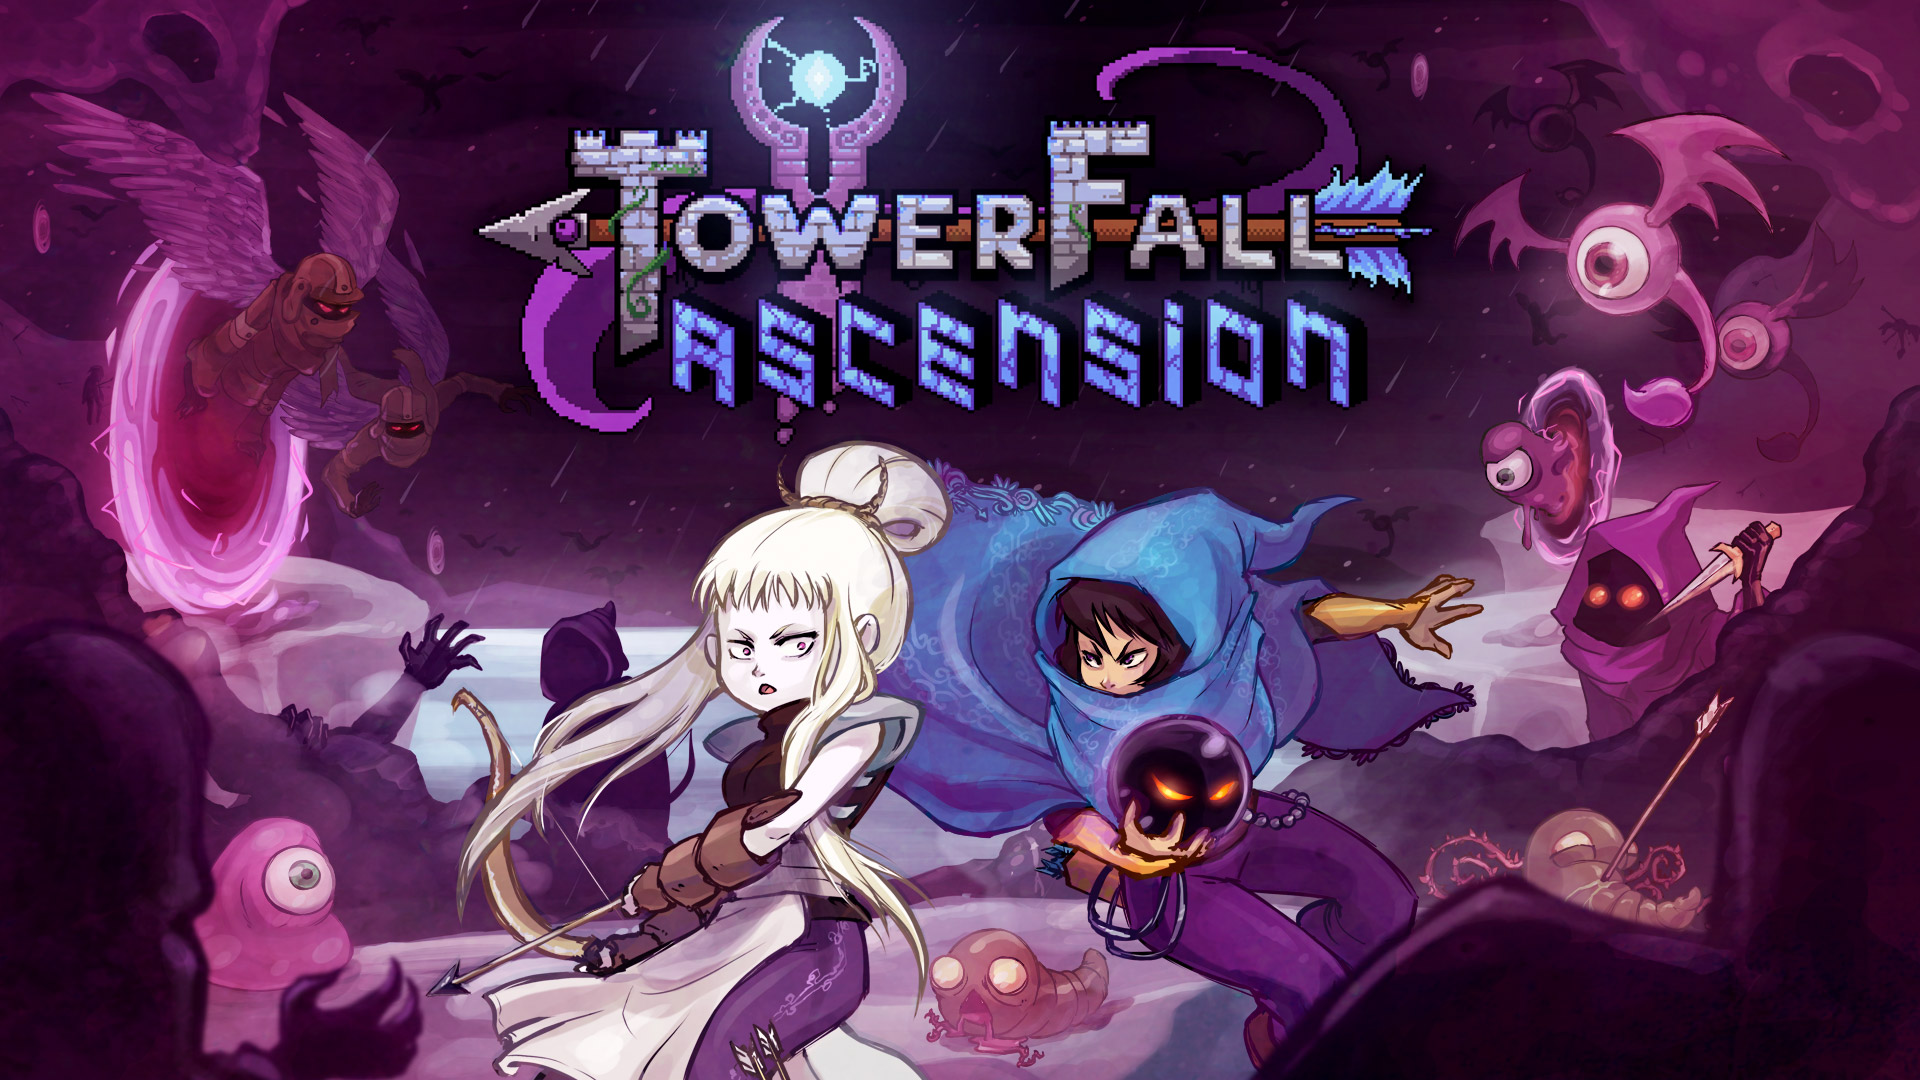 Free TowerFall Ascension Wallpaper in 1920x1080